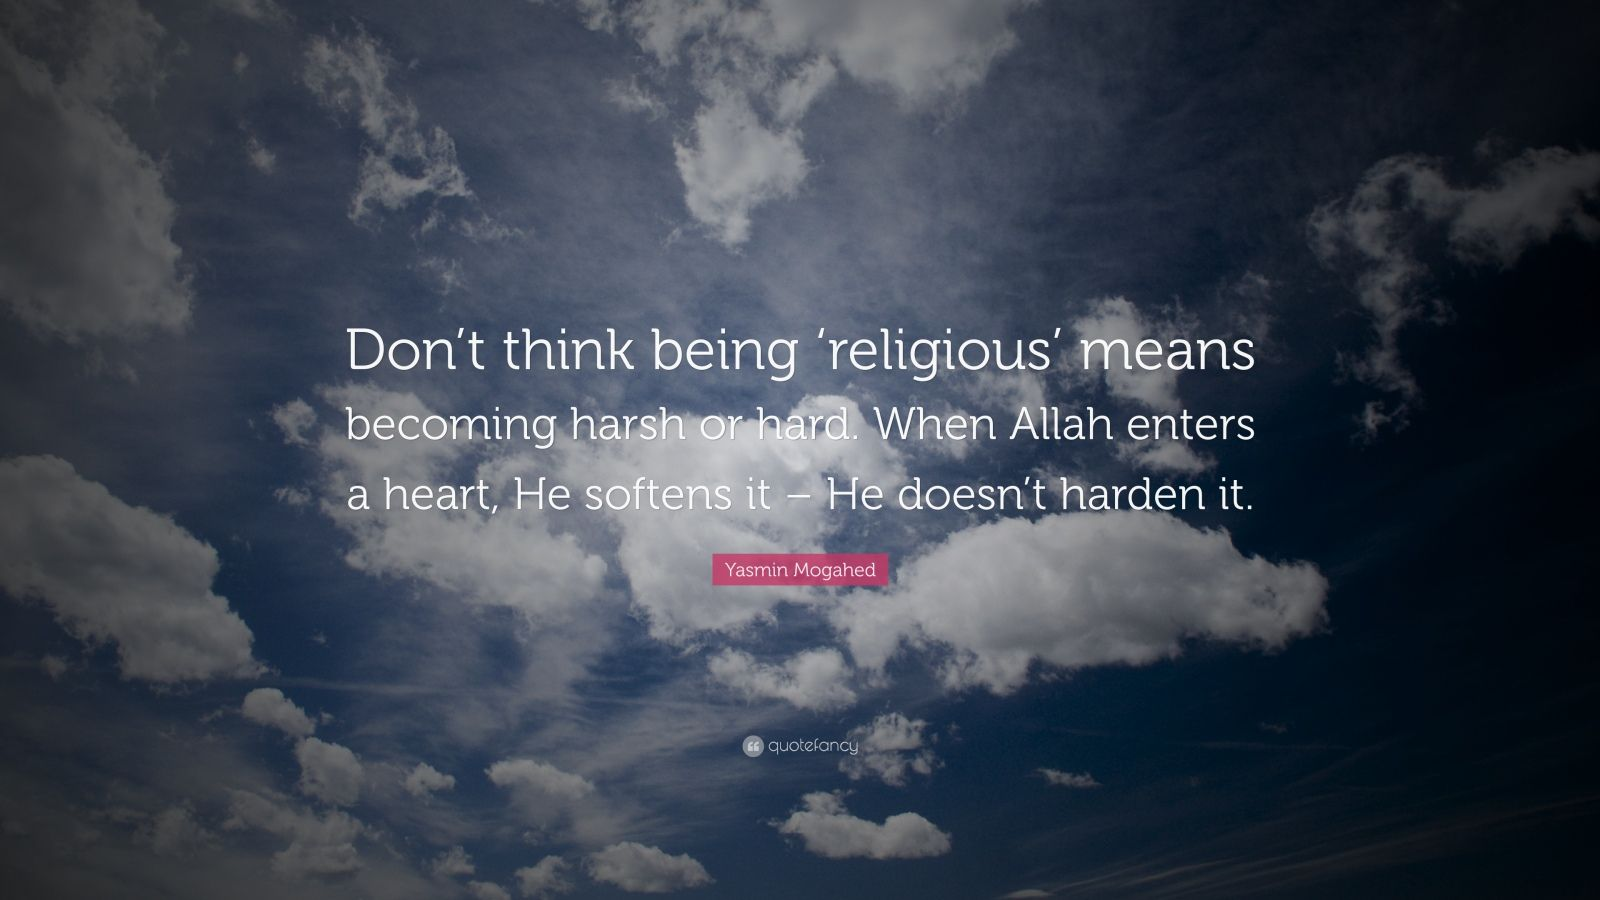 """Yasmin Mogahed Quote: """"Don't think being 'religious' means becoming harsh or hard. When Allah enters a heart, He softens it – He doesn't harden it."""""""